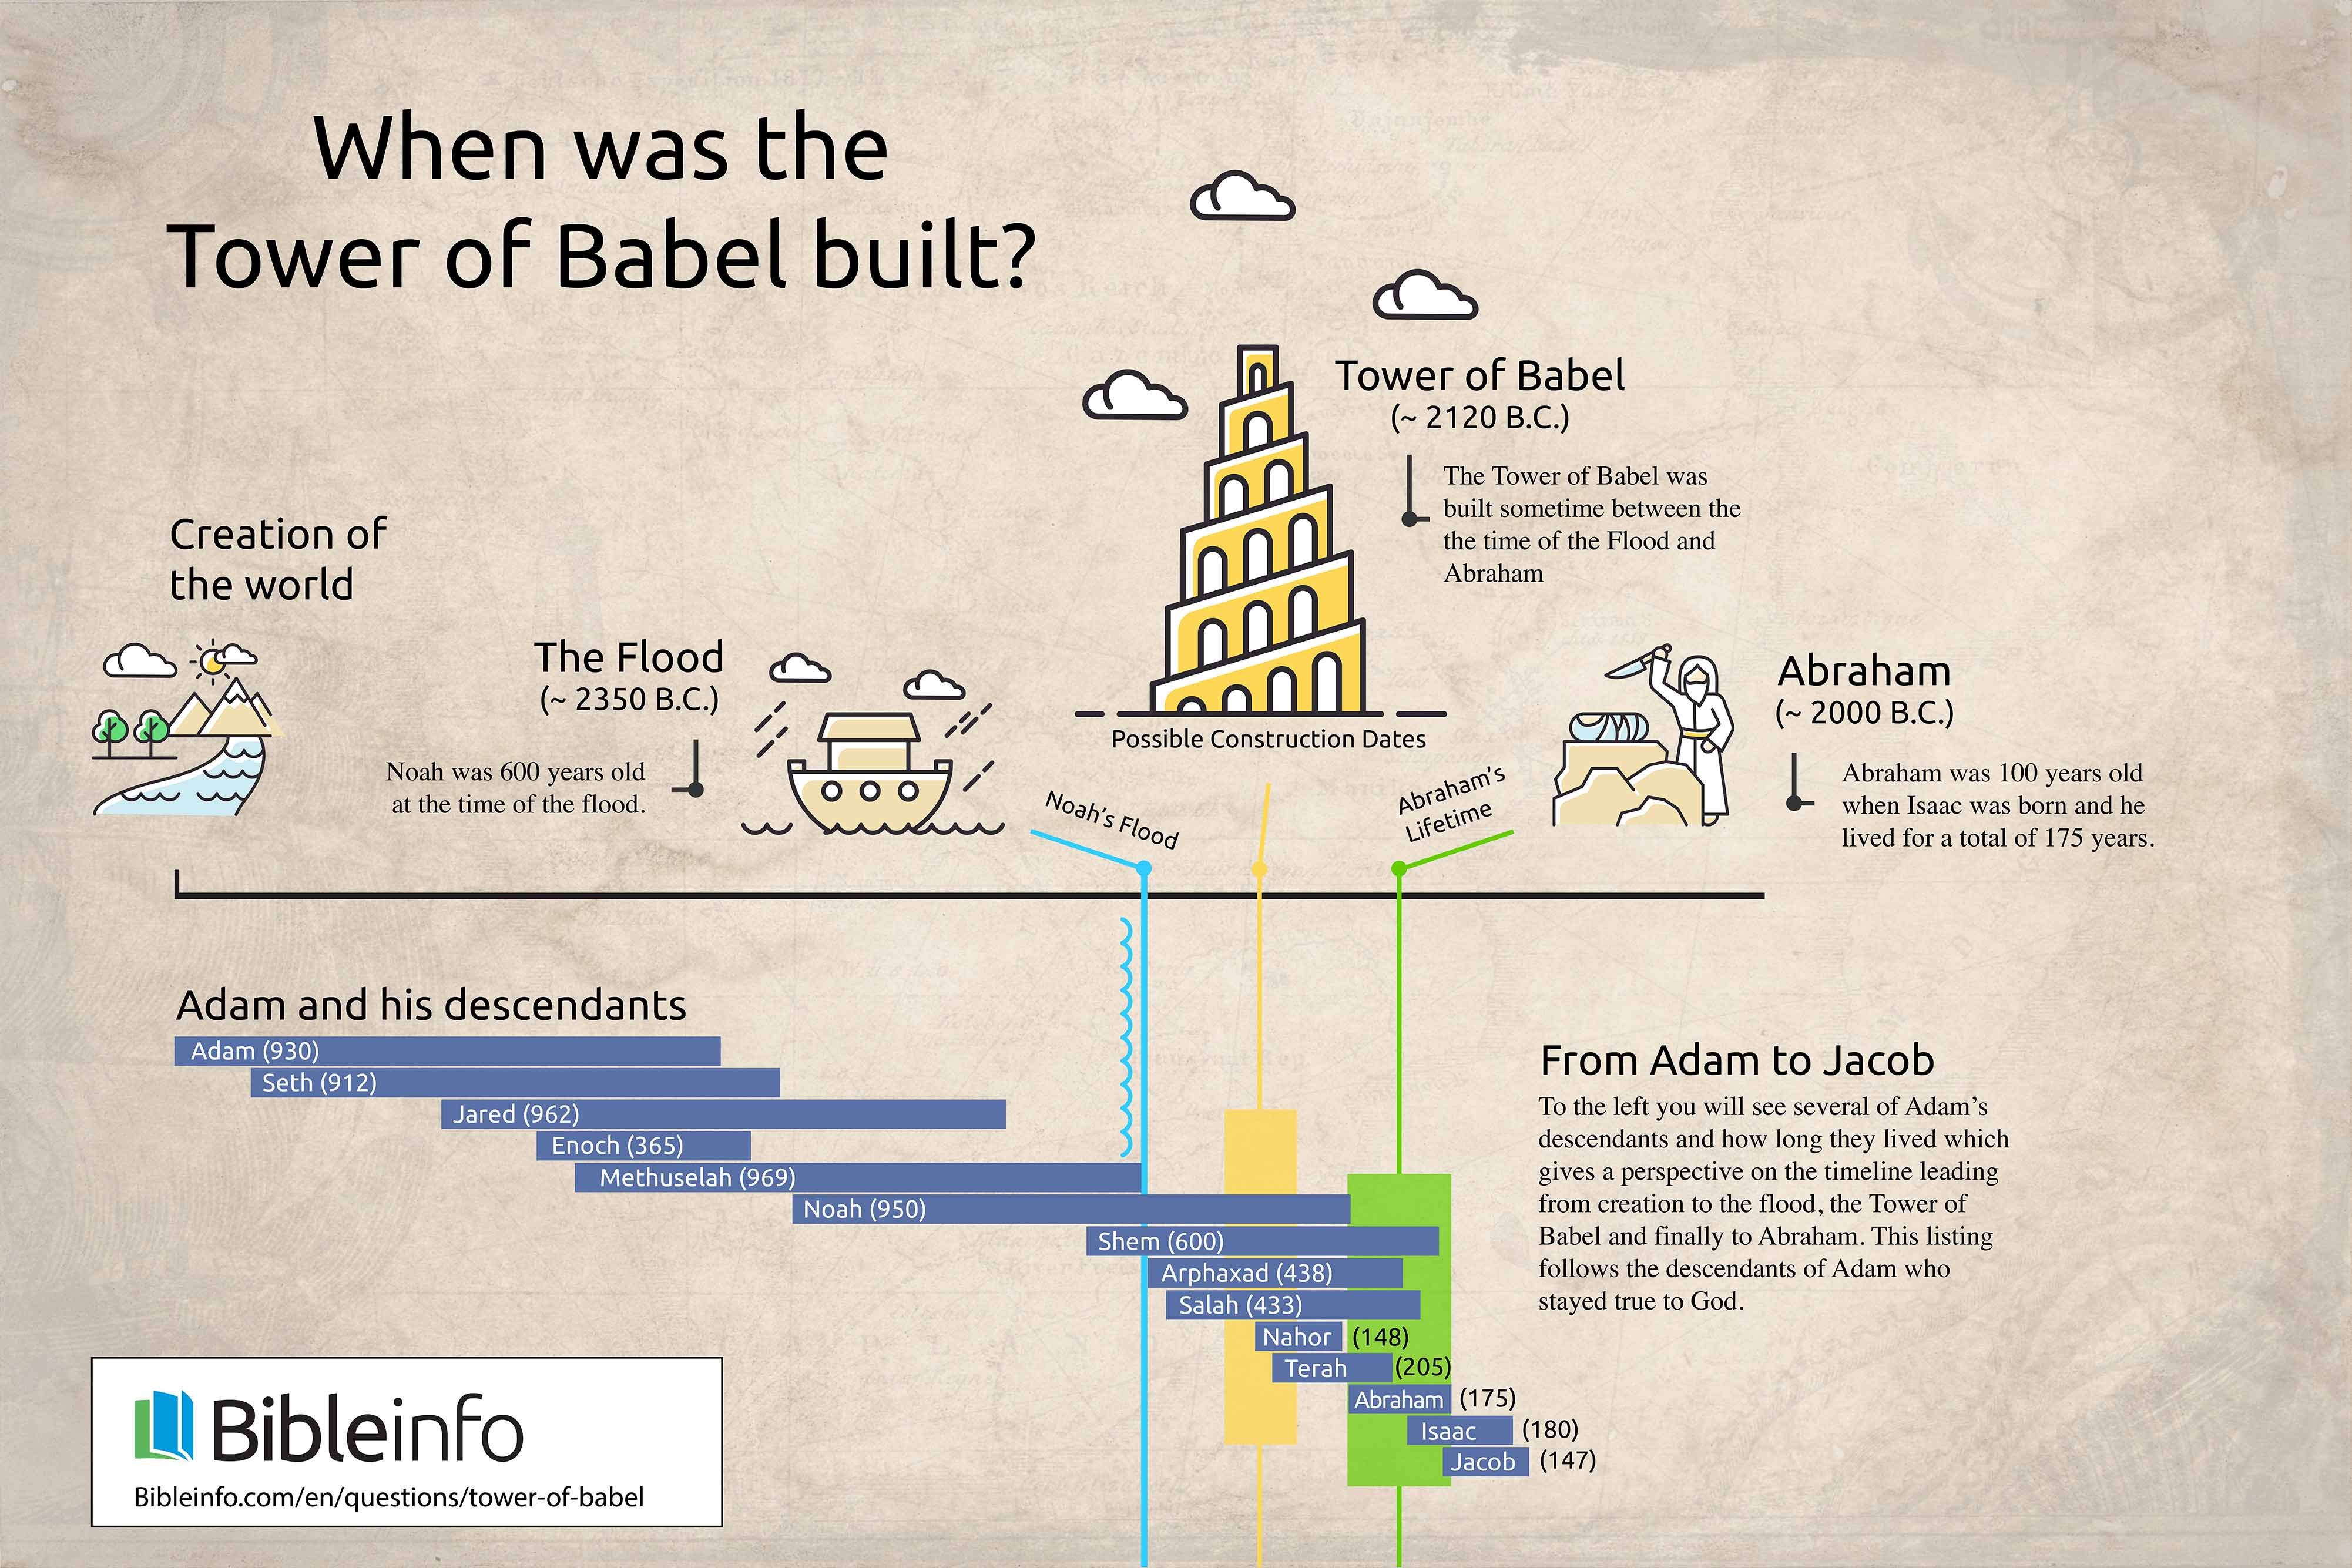 Timeline of the Tower of Babel